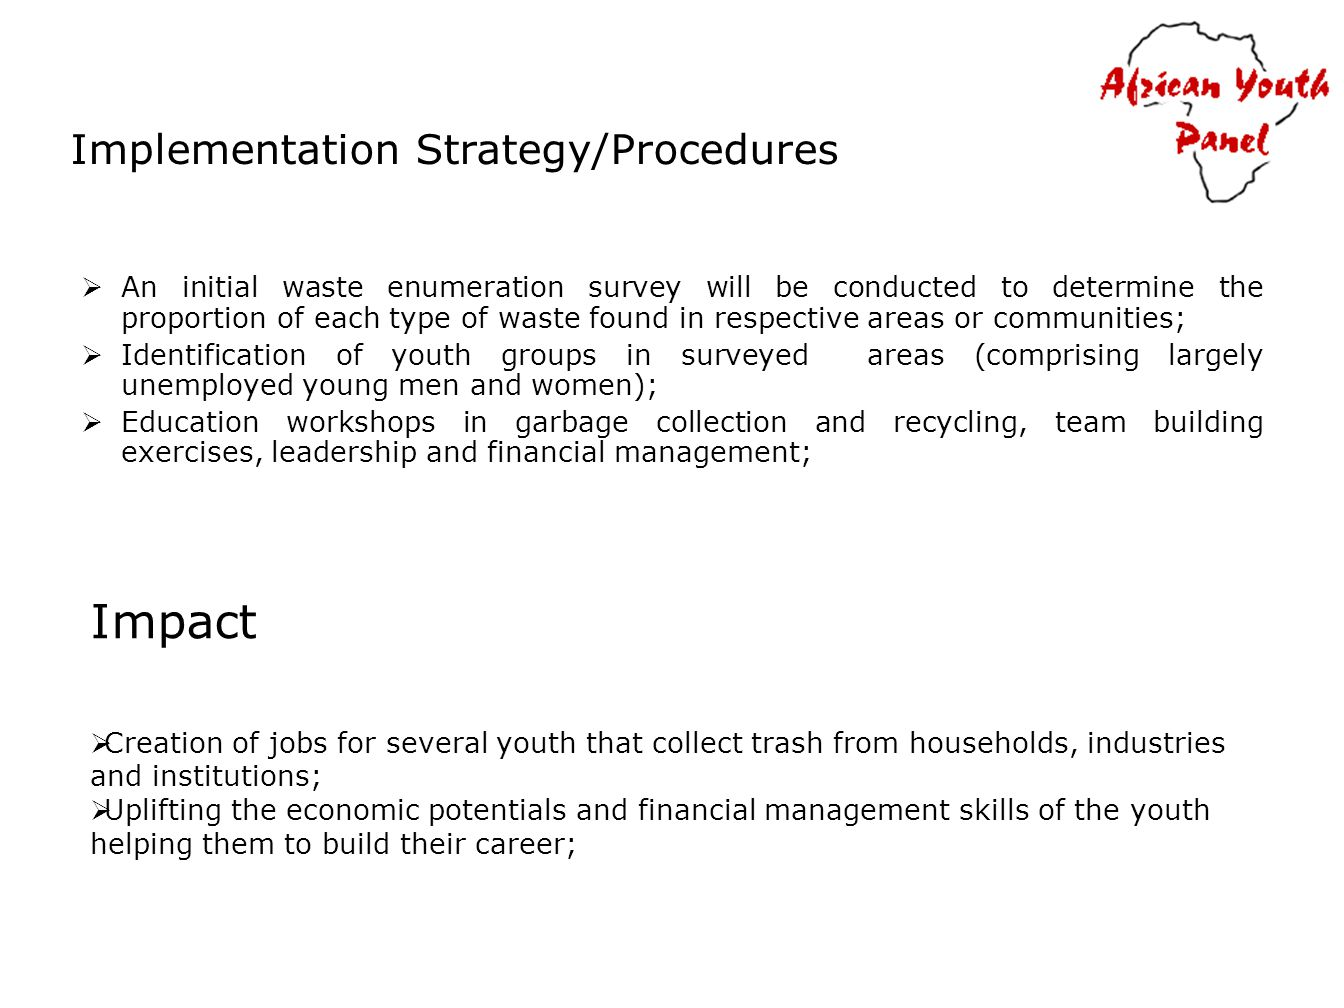 Implementation Strategy/Procedures An initial waste enumeration survey will be conducted to determine the proportion of each type of waste found in respective areas or communities; Identification of youth groups in surveyed areas (comprising largely unemployed young men and women); Education workshops in garbage collection and recycling, team building exercises, leadership and financial management; Impact Creation of jobs for several youth that collect trash from households, industries and institutions; Uplifting the economic potentials and financial management skills of the youth helping them to build their career;